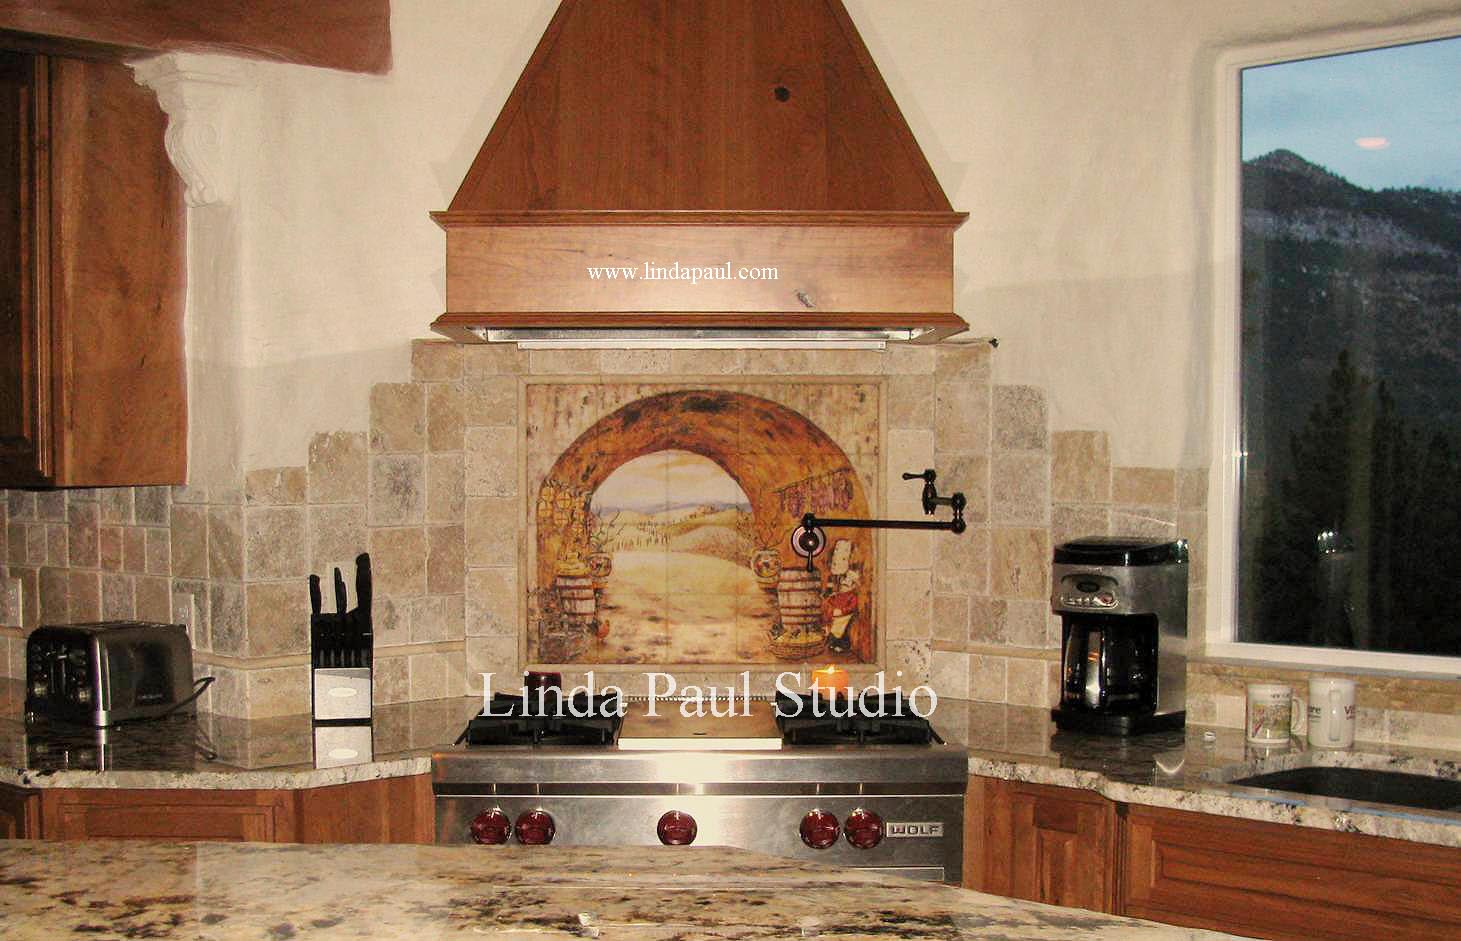 Everything Tuscany tile mural backsplash kitchen backsplash tiles Everything Tuscany Tile Kitchen Backsplash Mural by artist Linda Paul